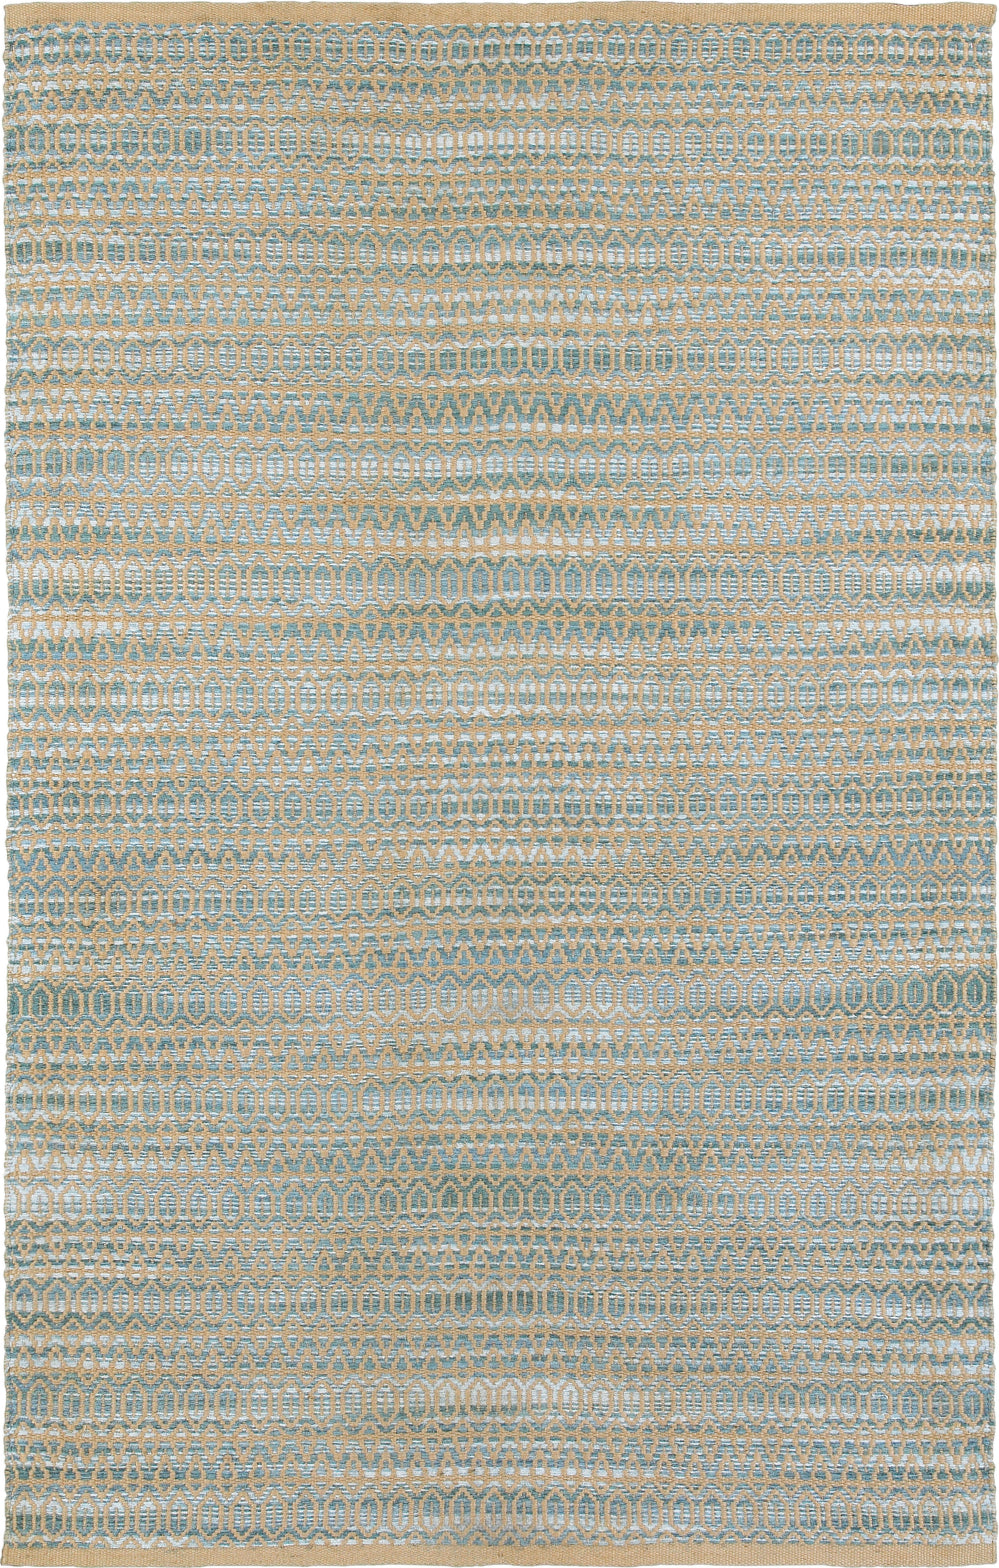 LR Resources Natural Fiber 3309 Moonstone Area Rug main image